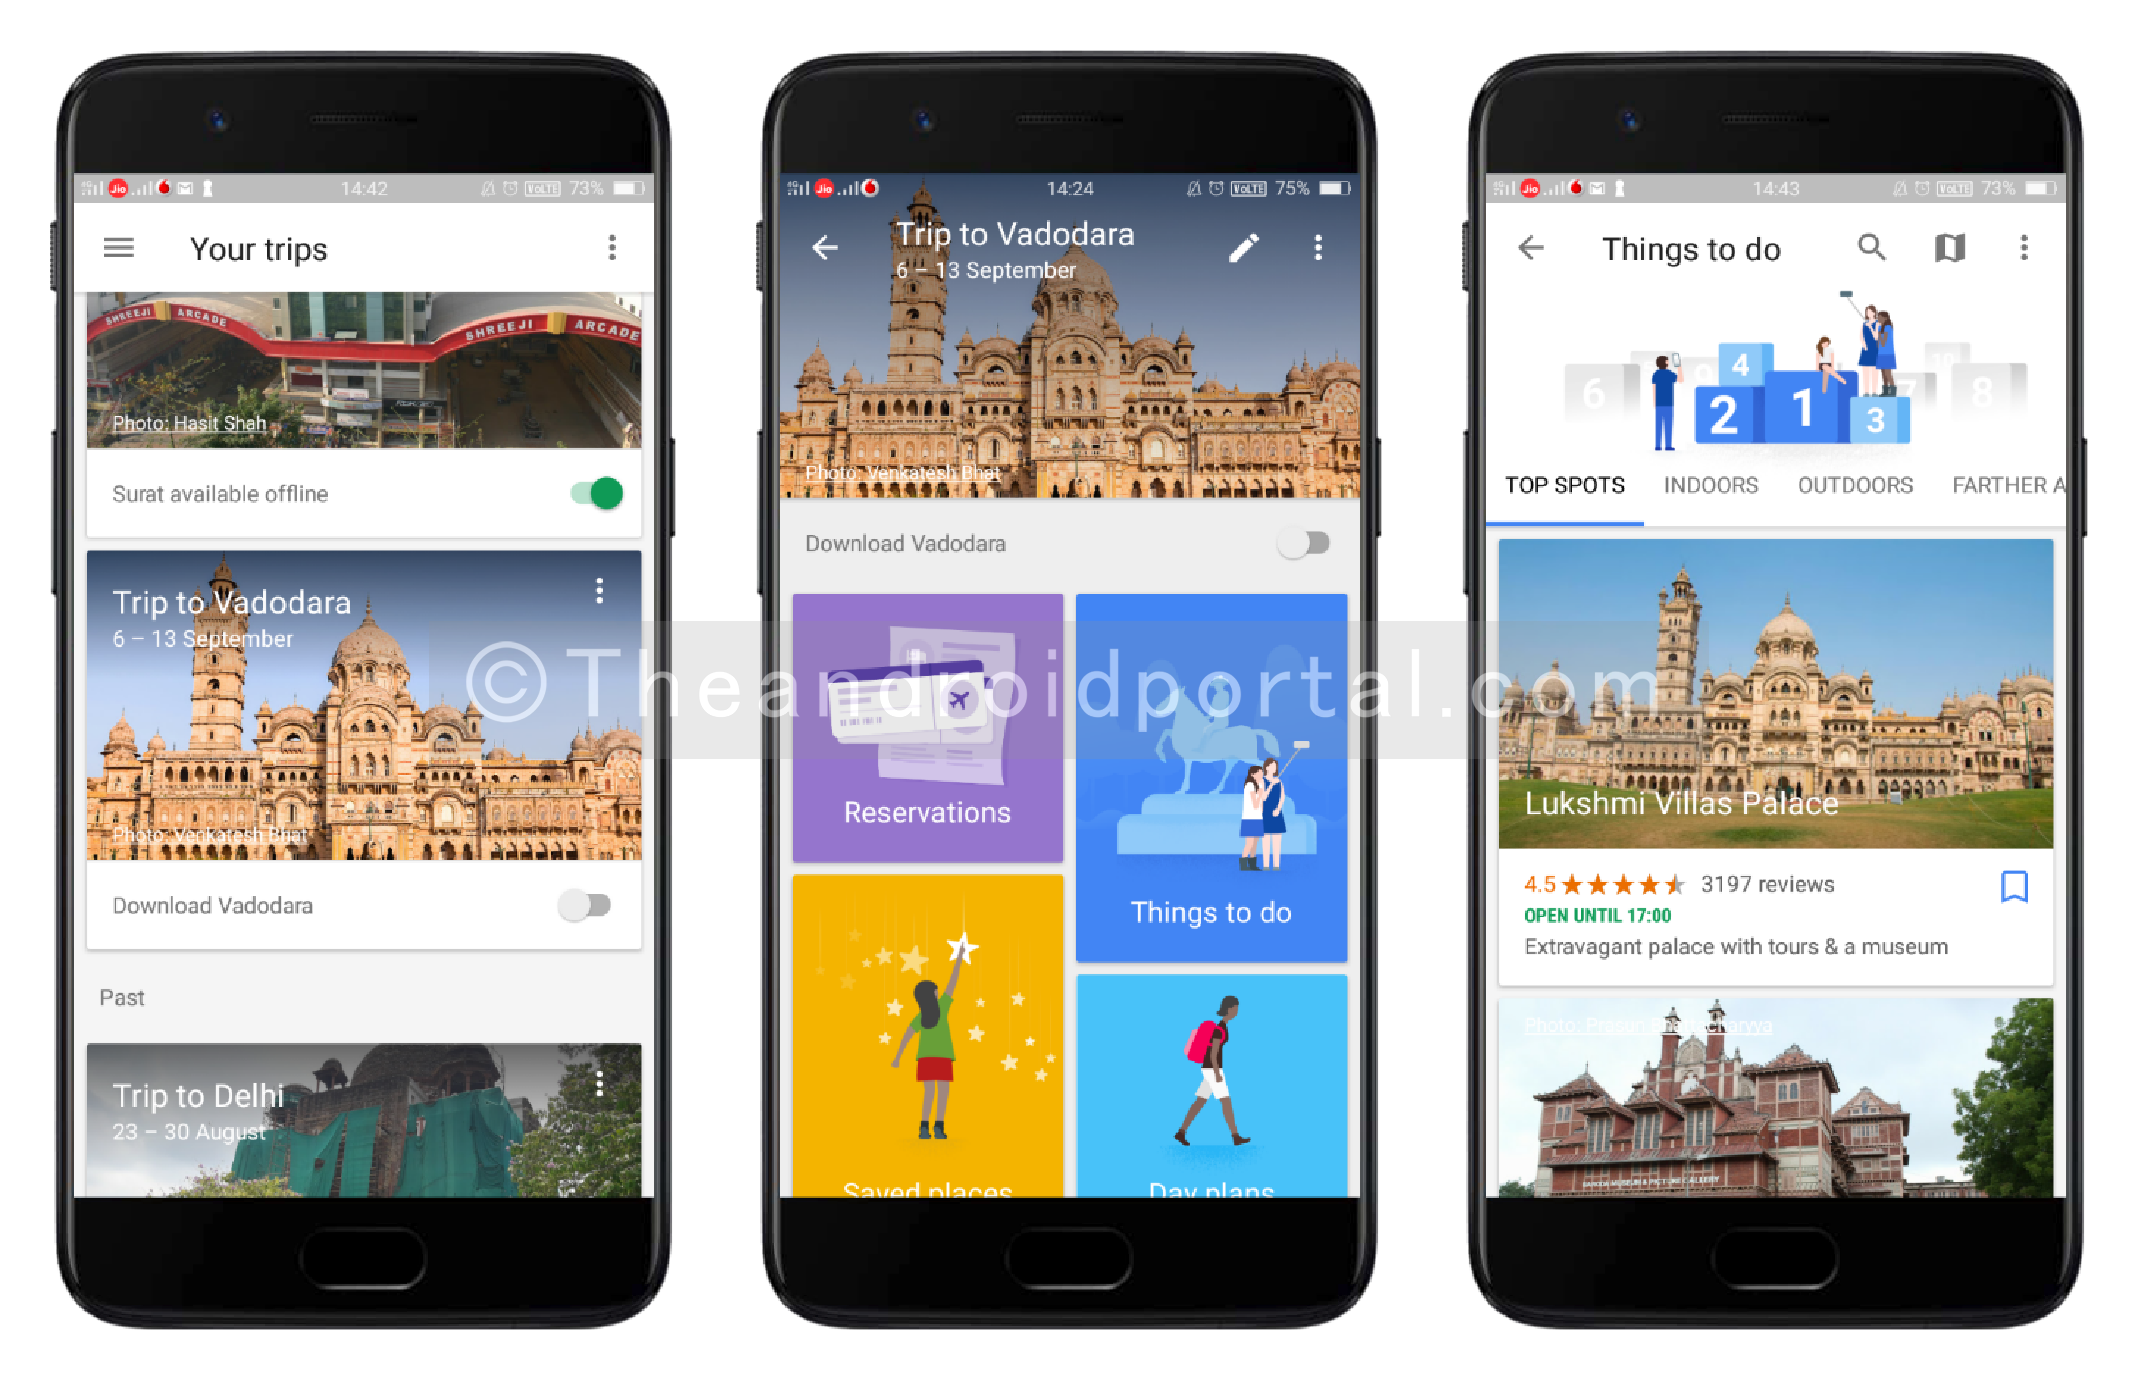 Google Trips Android App - Everything You Need To Know